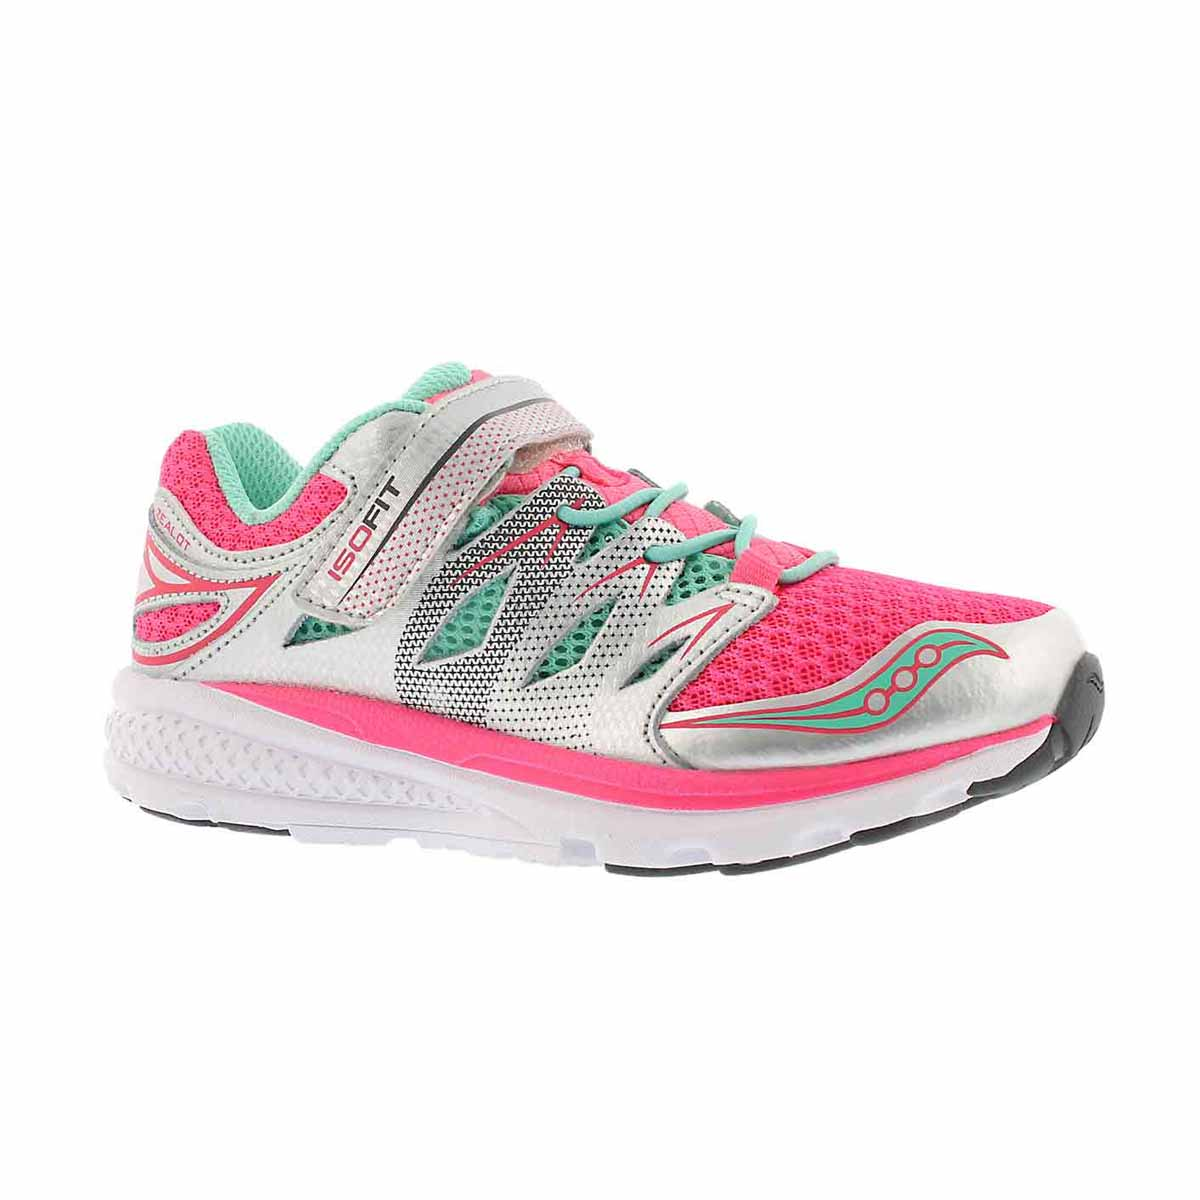 Girls' ZEALOT 2 silver/turquoise/pink